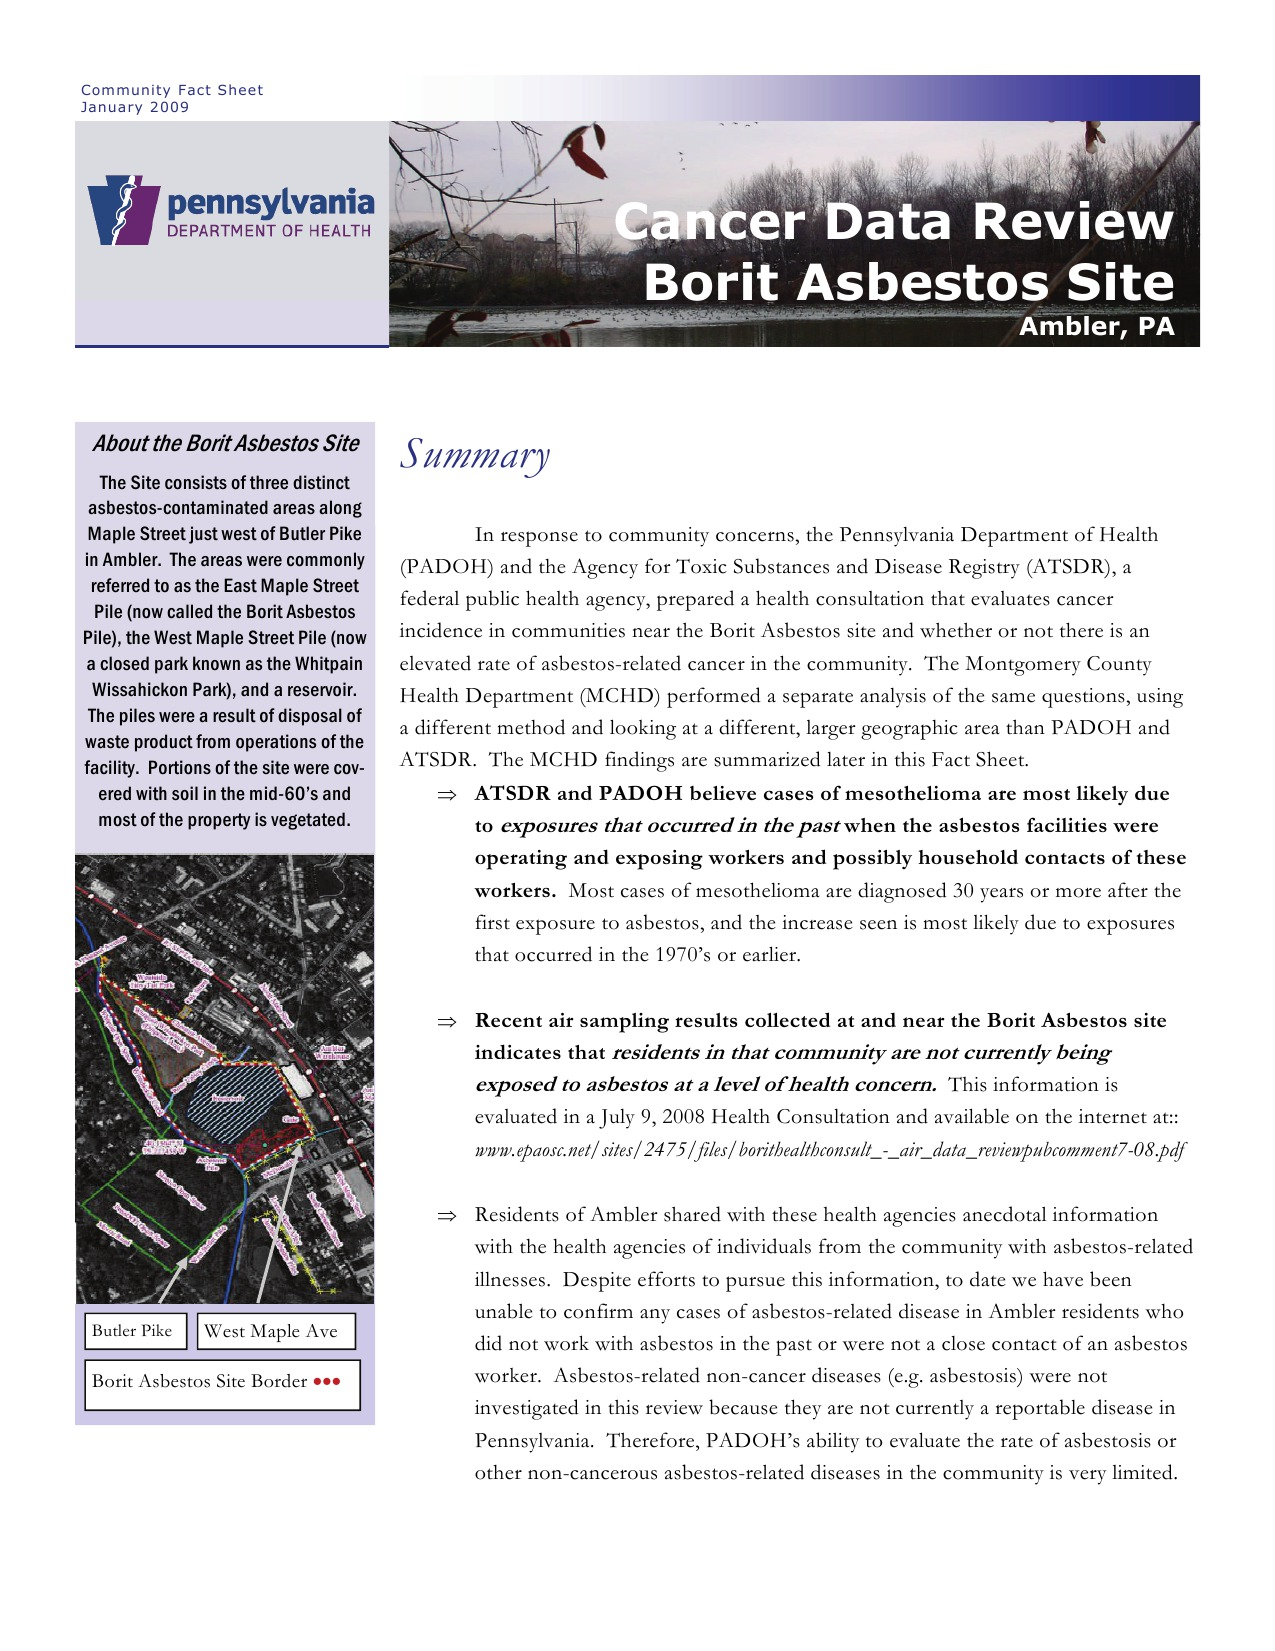 Cancer data review for BoRit asbestos site, excerpt, January 2009.   Pennsylvania Department of Health.